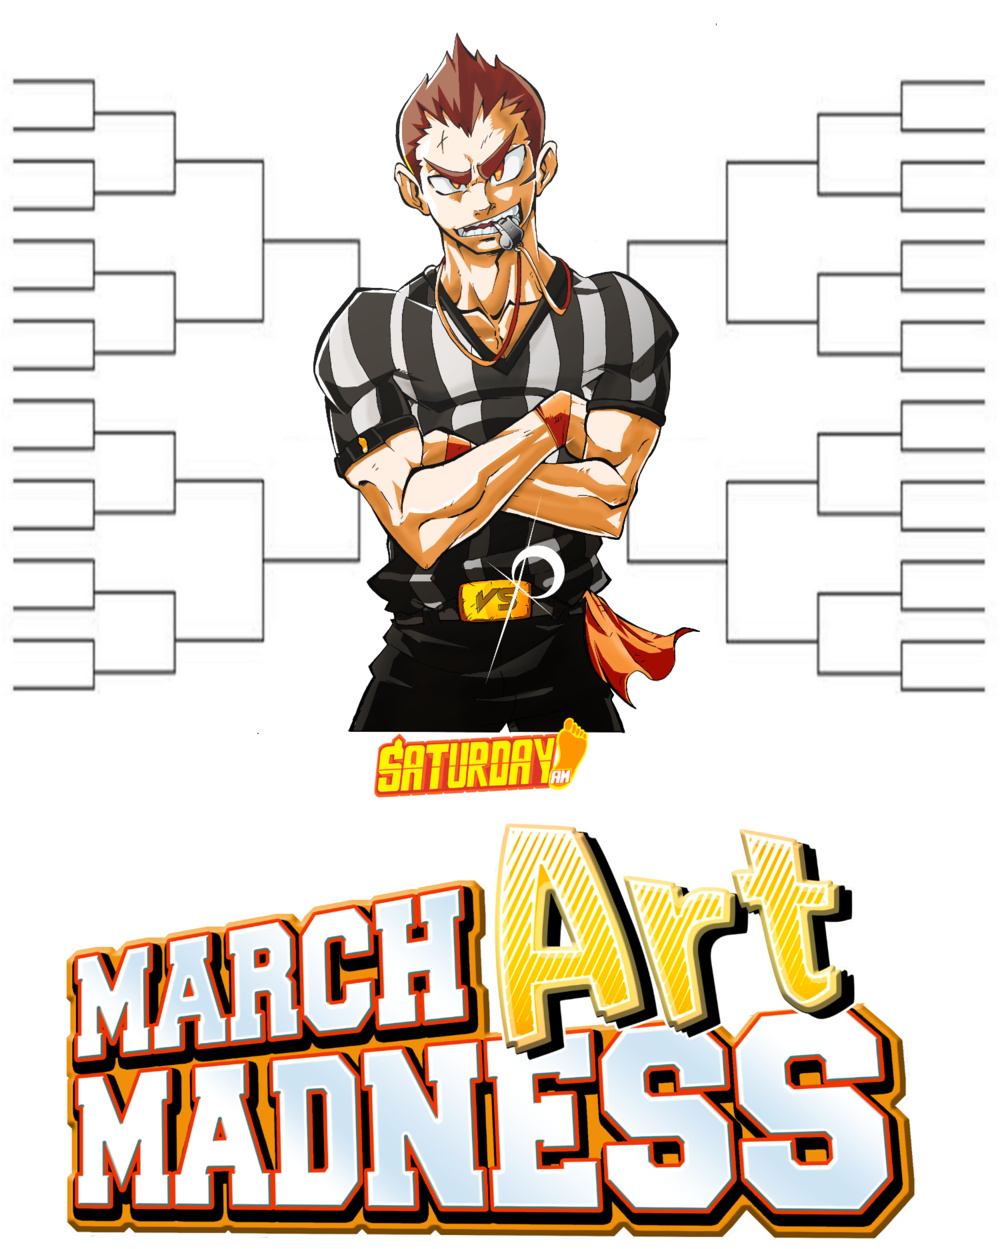 MARCH ART MADNESS IS HERE - Begins February 27th, 2017